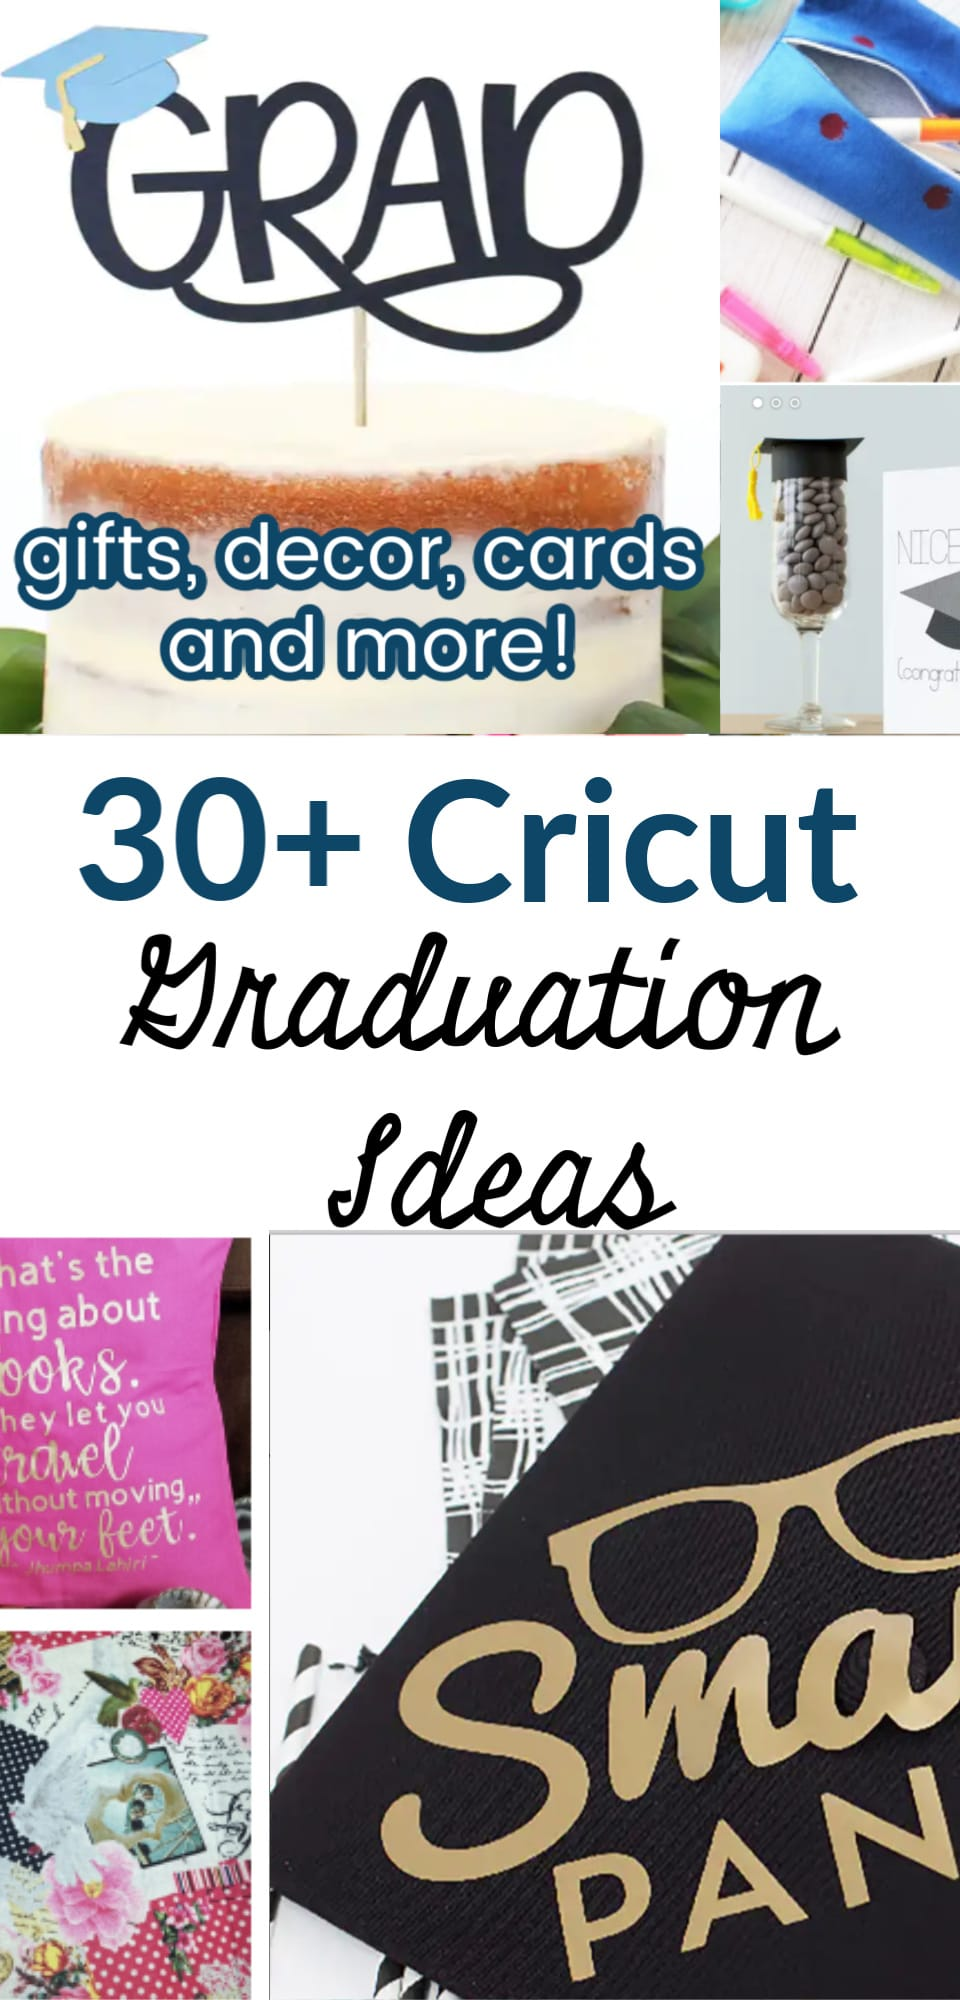 Cricut Graduation Ideas